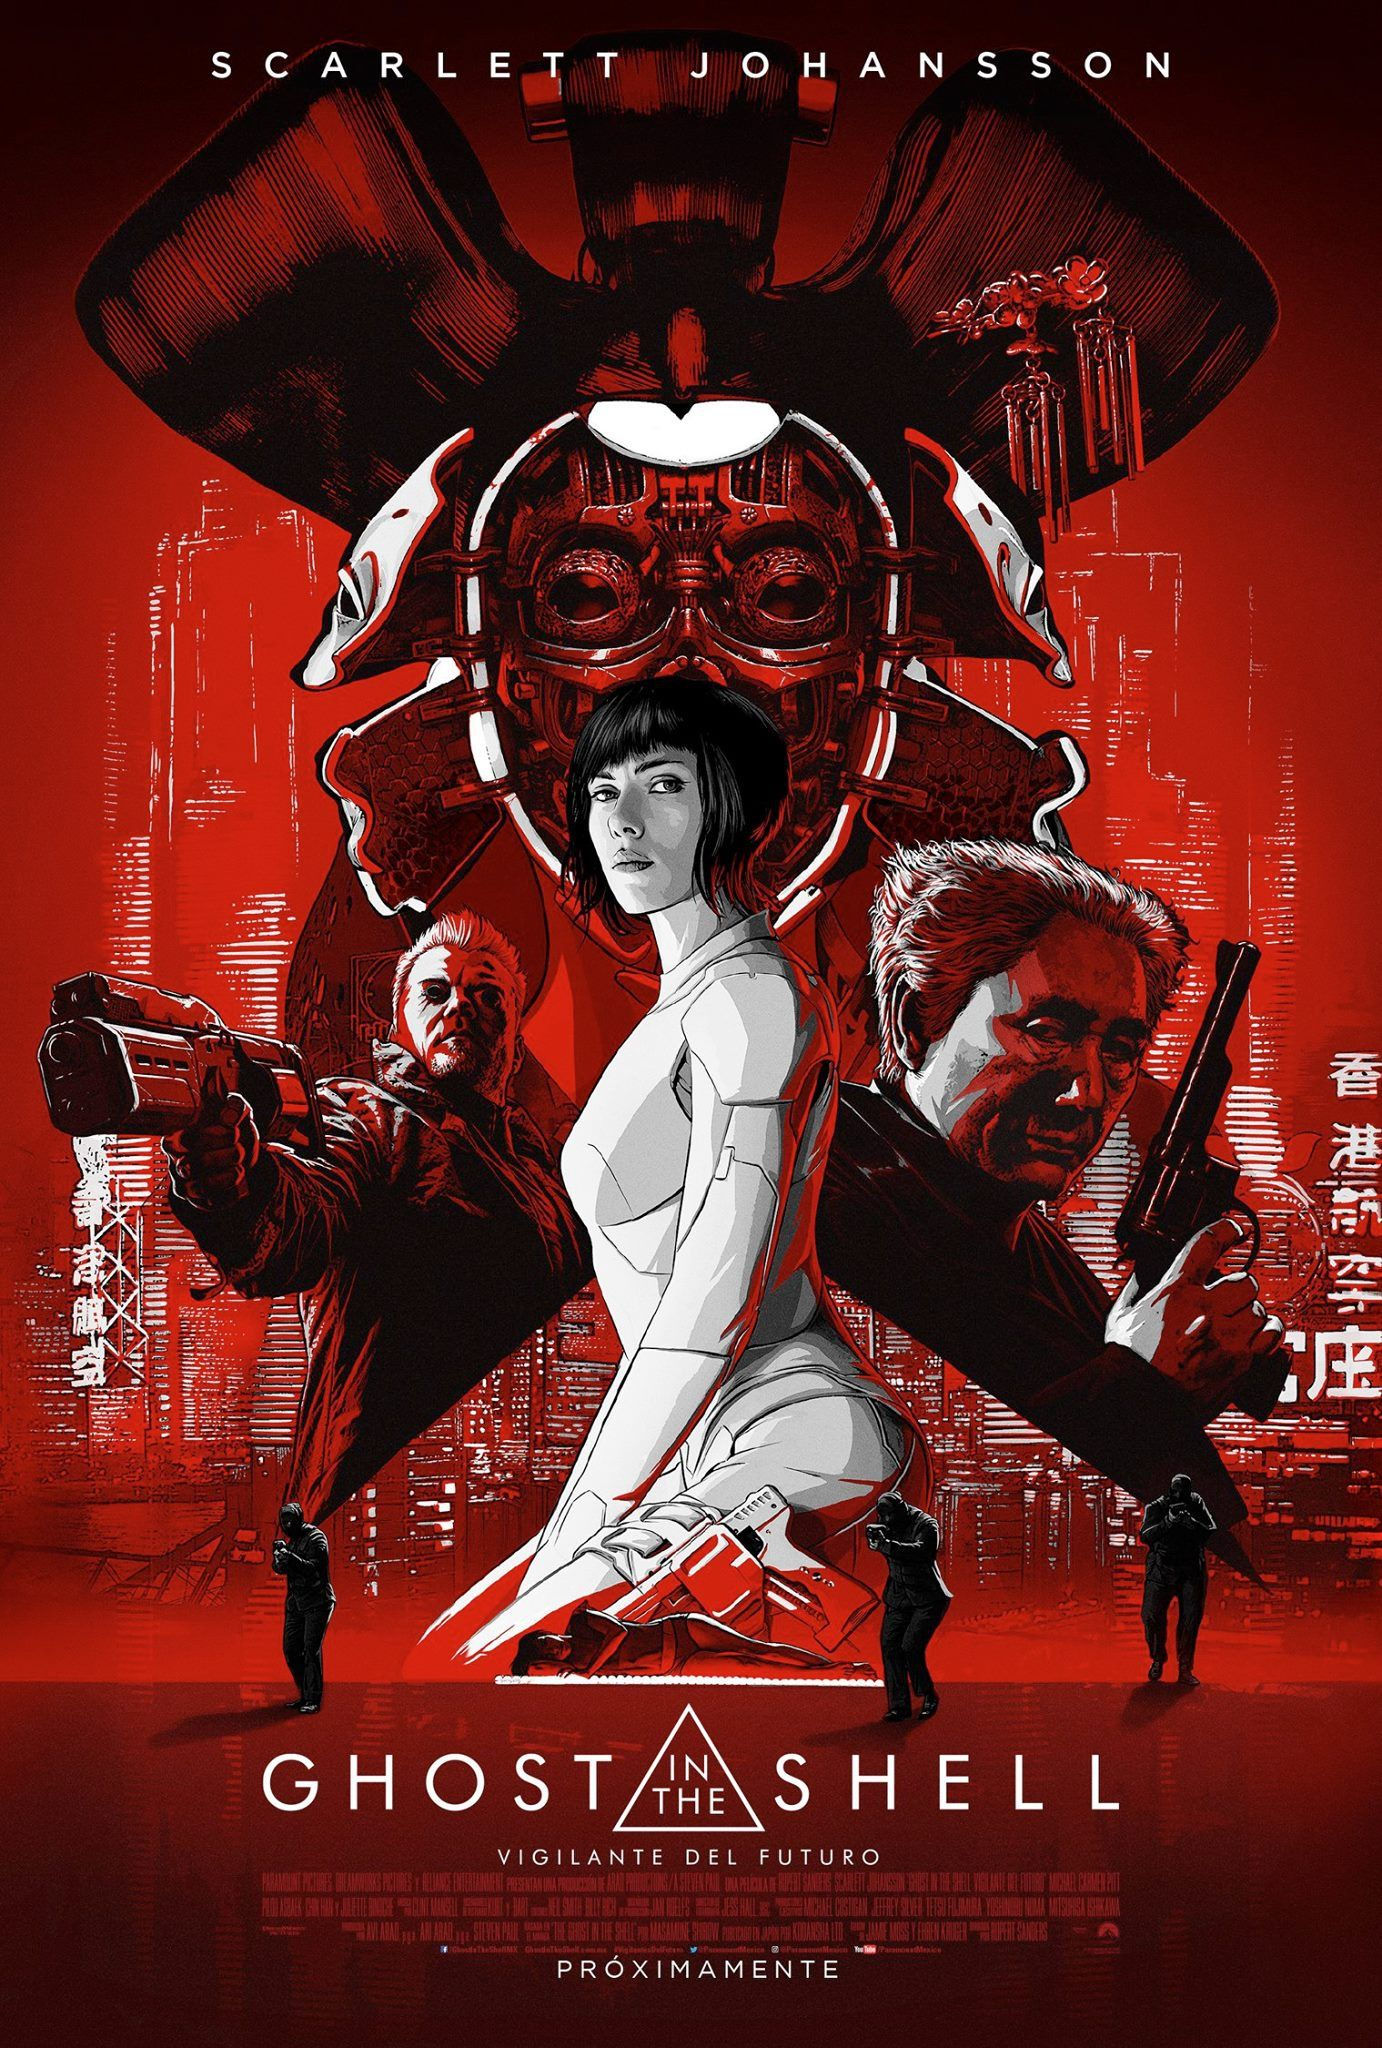 Ghost In The Shell 2017 1382 X 2048 Wallpaper Background For